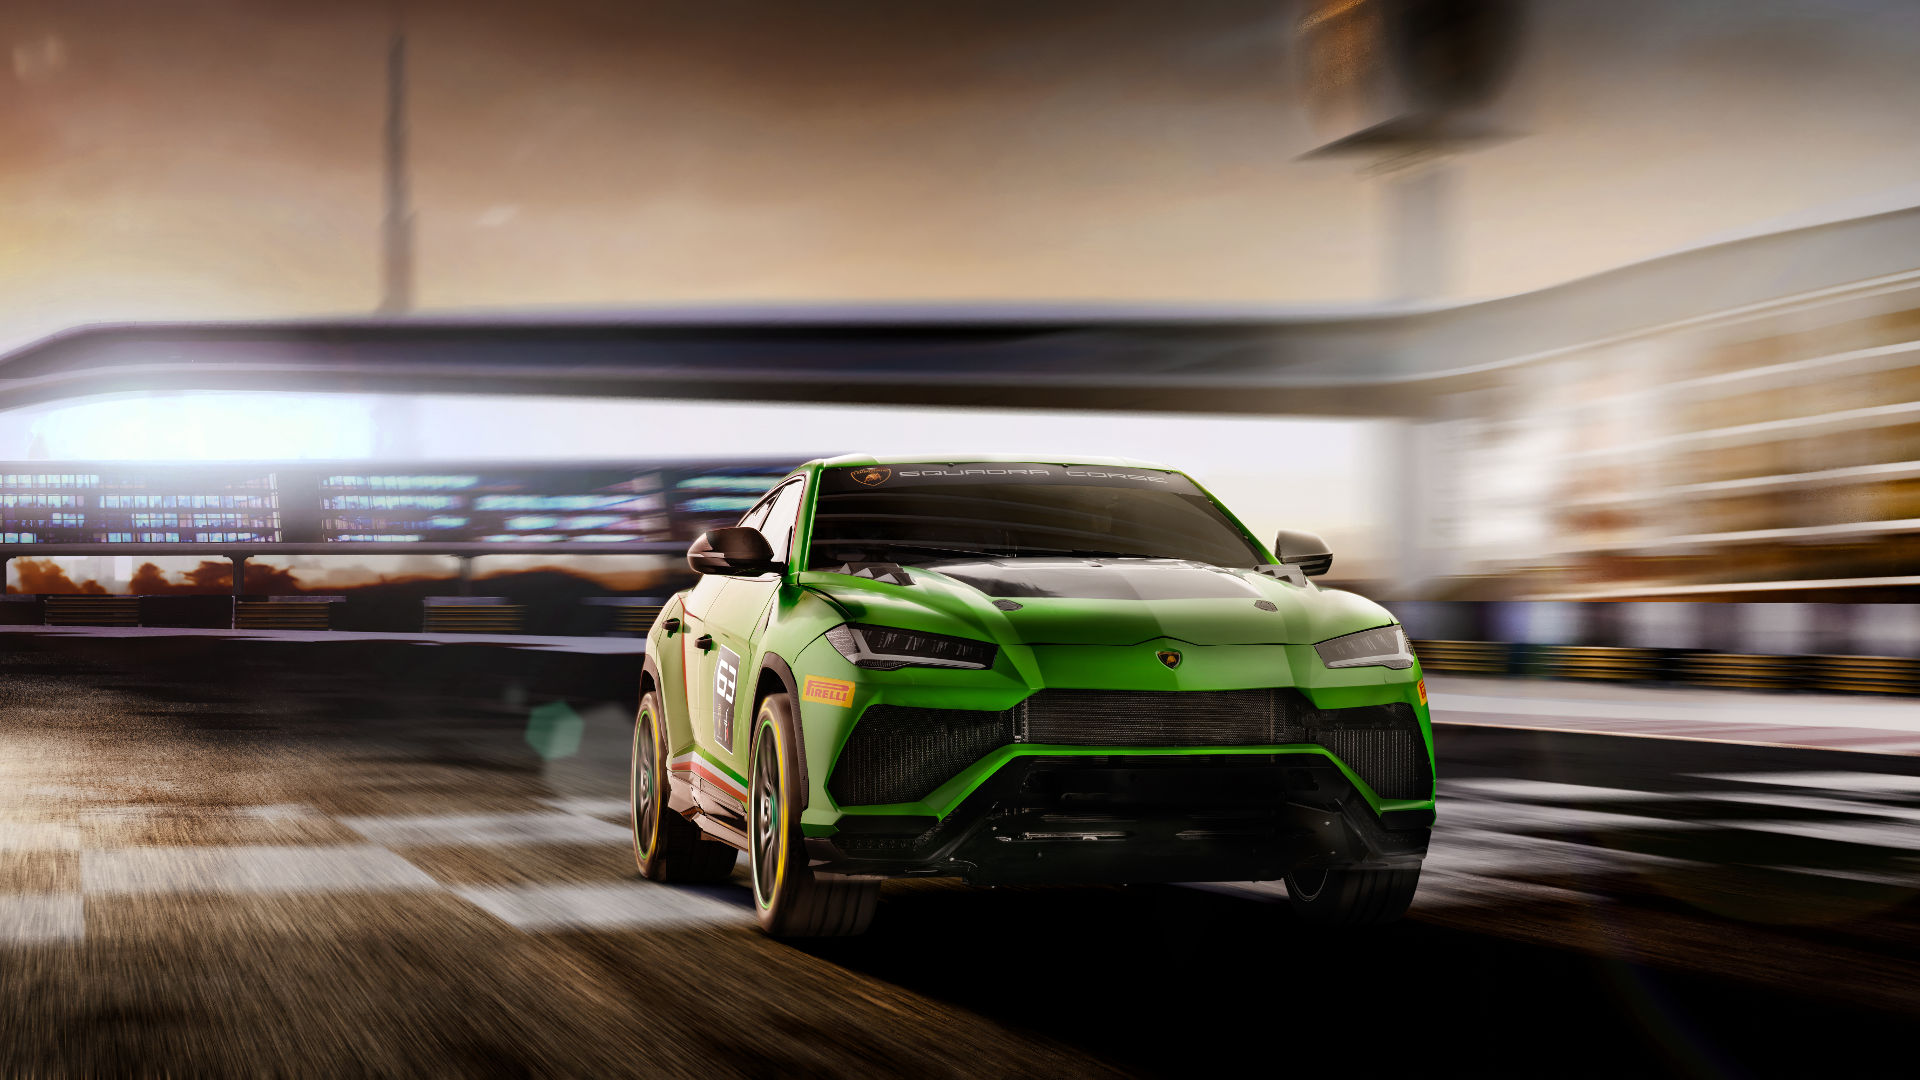 Urus St X Concept The World S First Super Suv Goes Racing